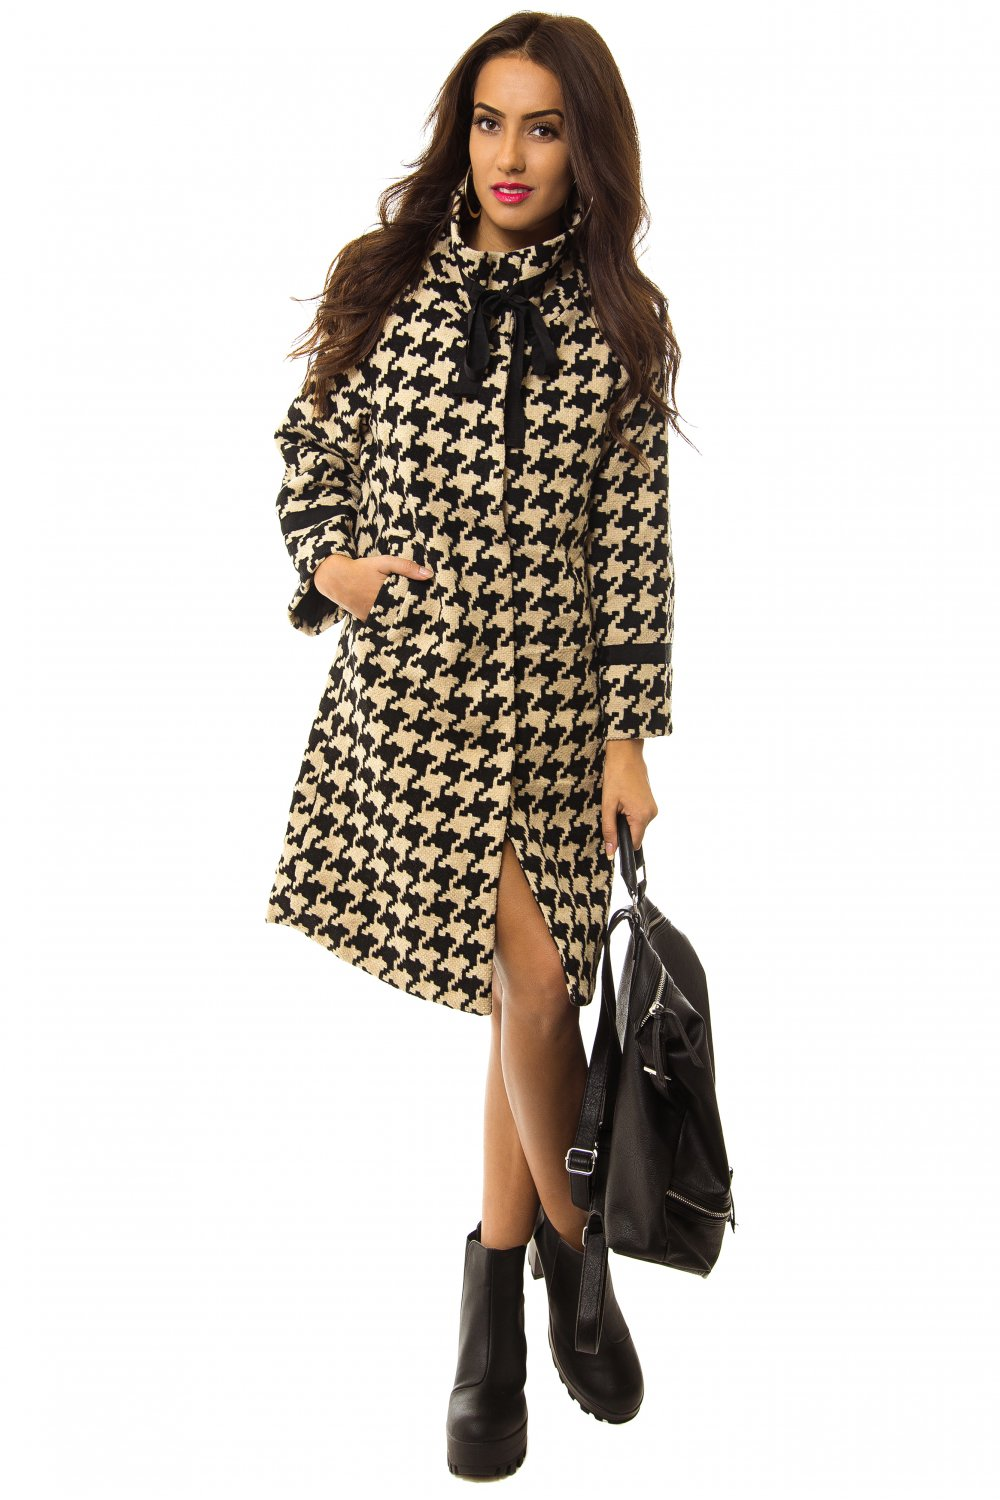 Sienna Limited Edition Dogtooth Coat - from The Fashion Bible UK